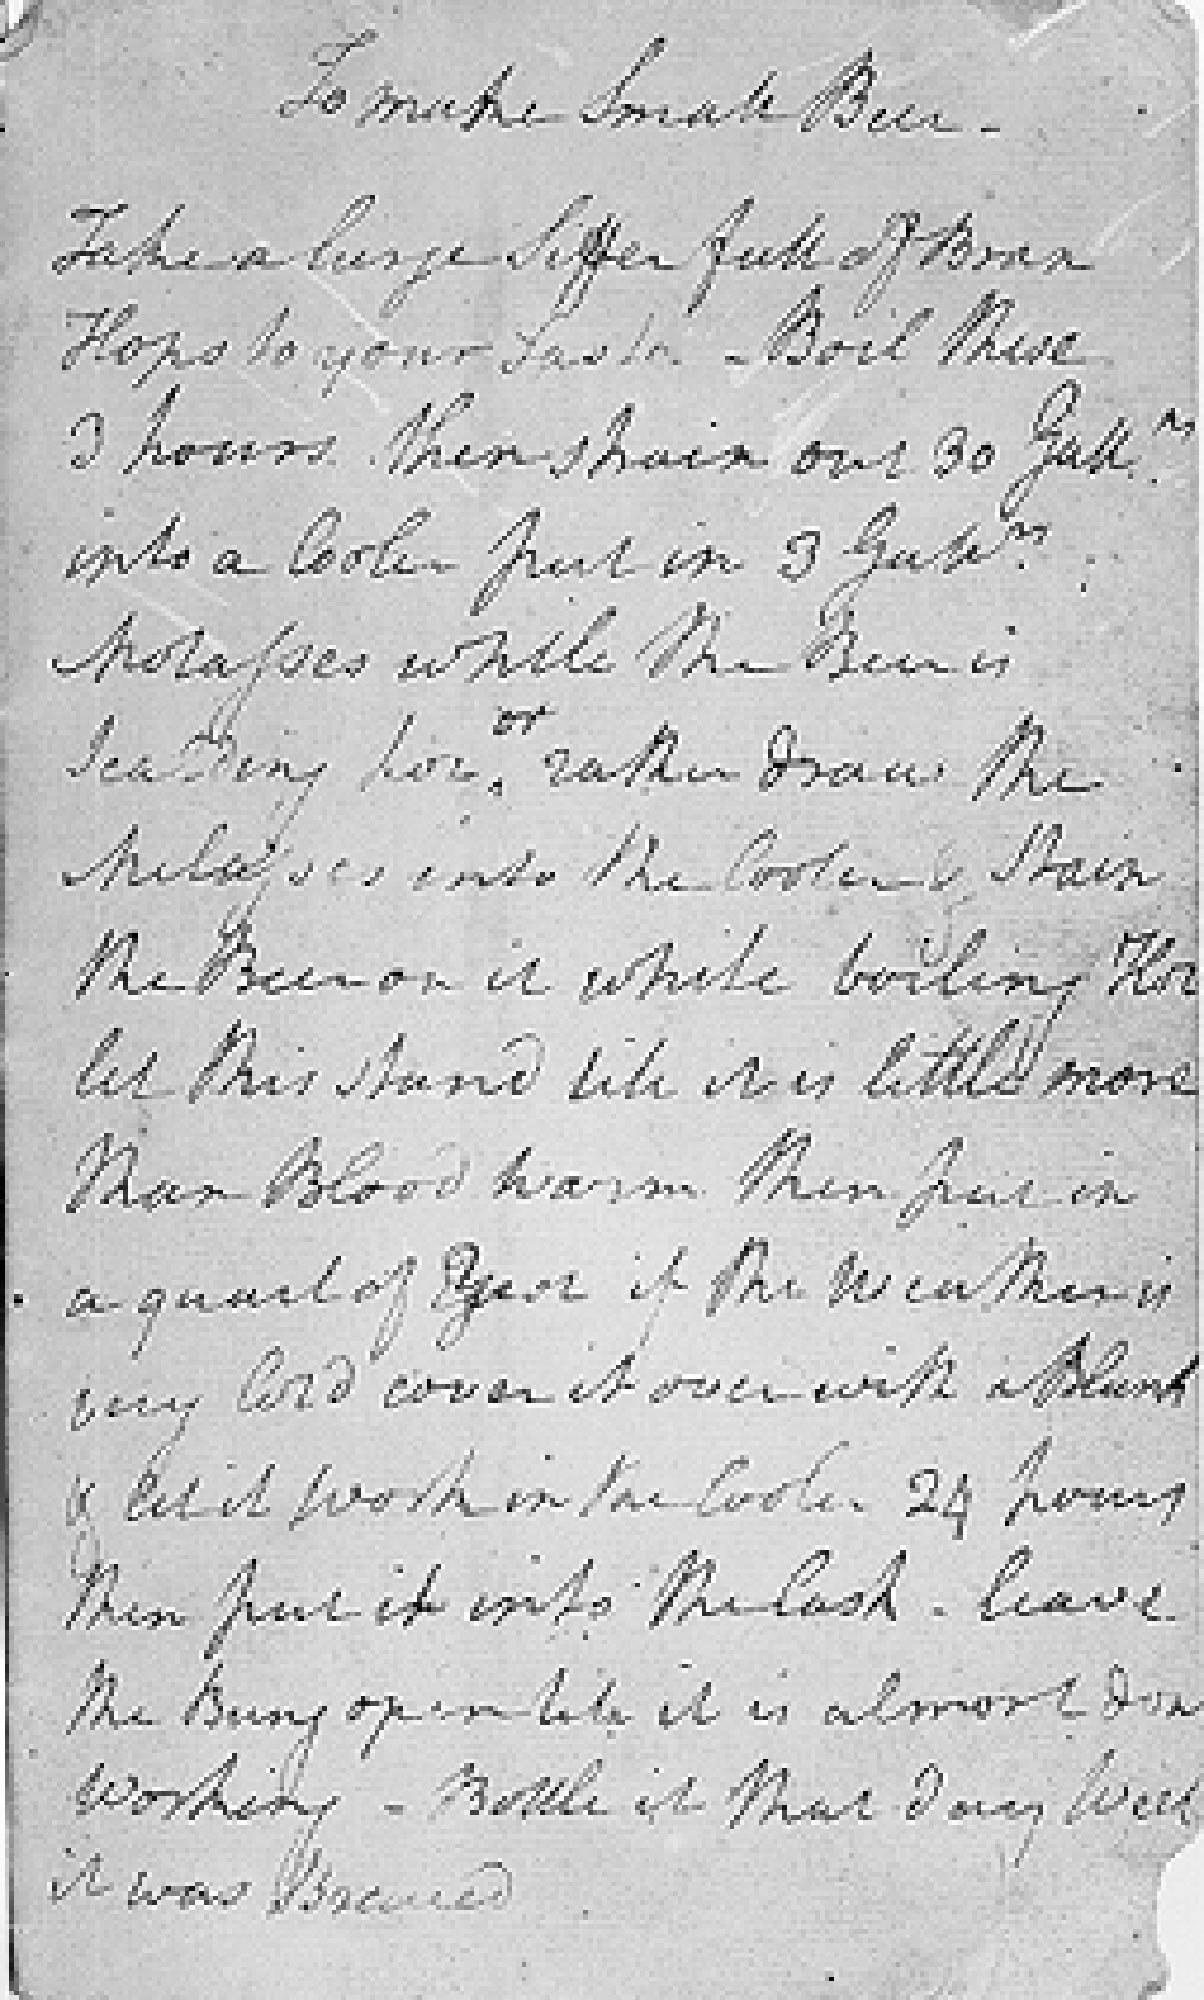 Budweiser's New Beer Is Based on a Handwritten Recipe from George Washington